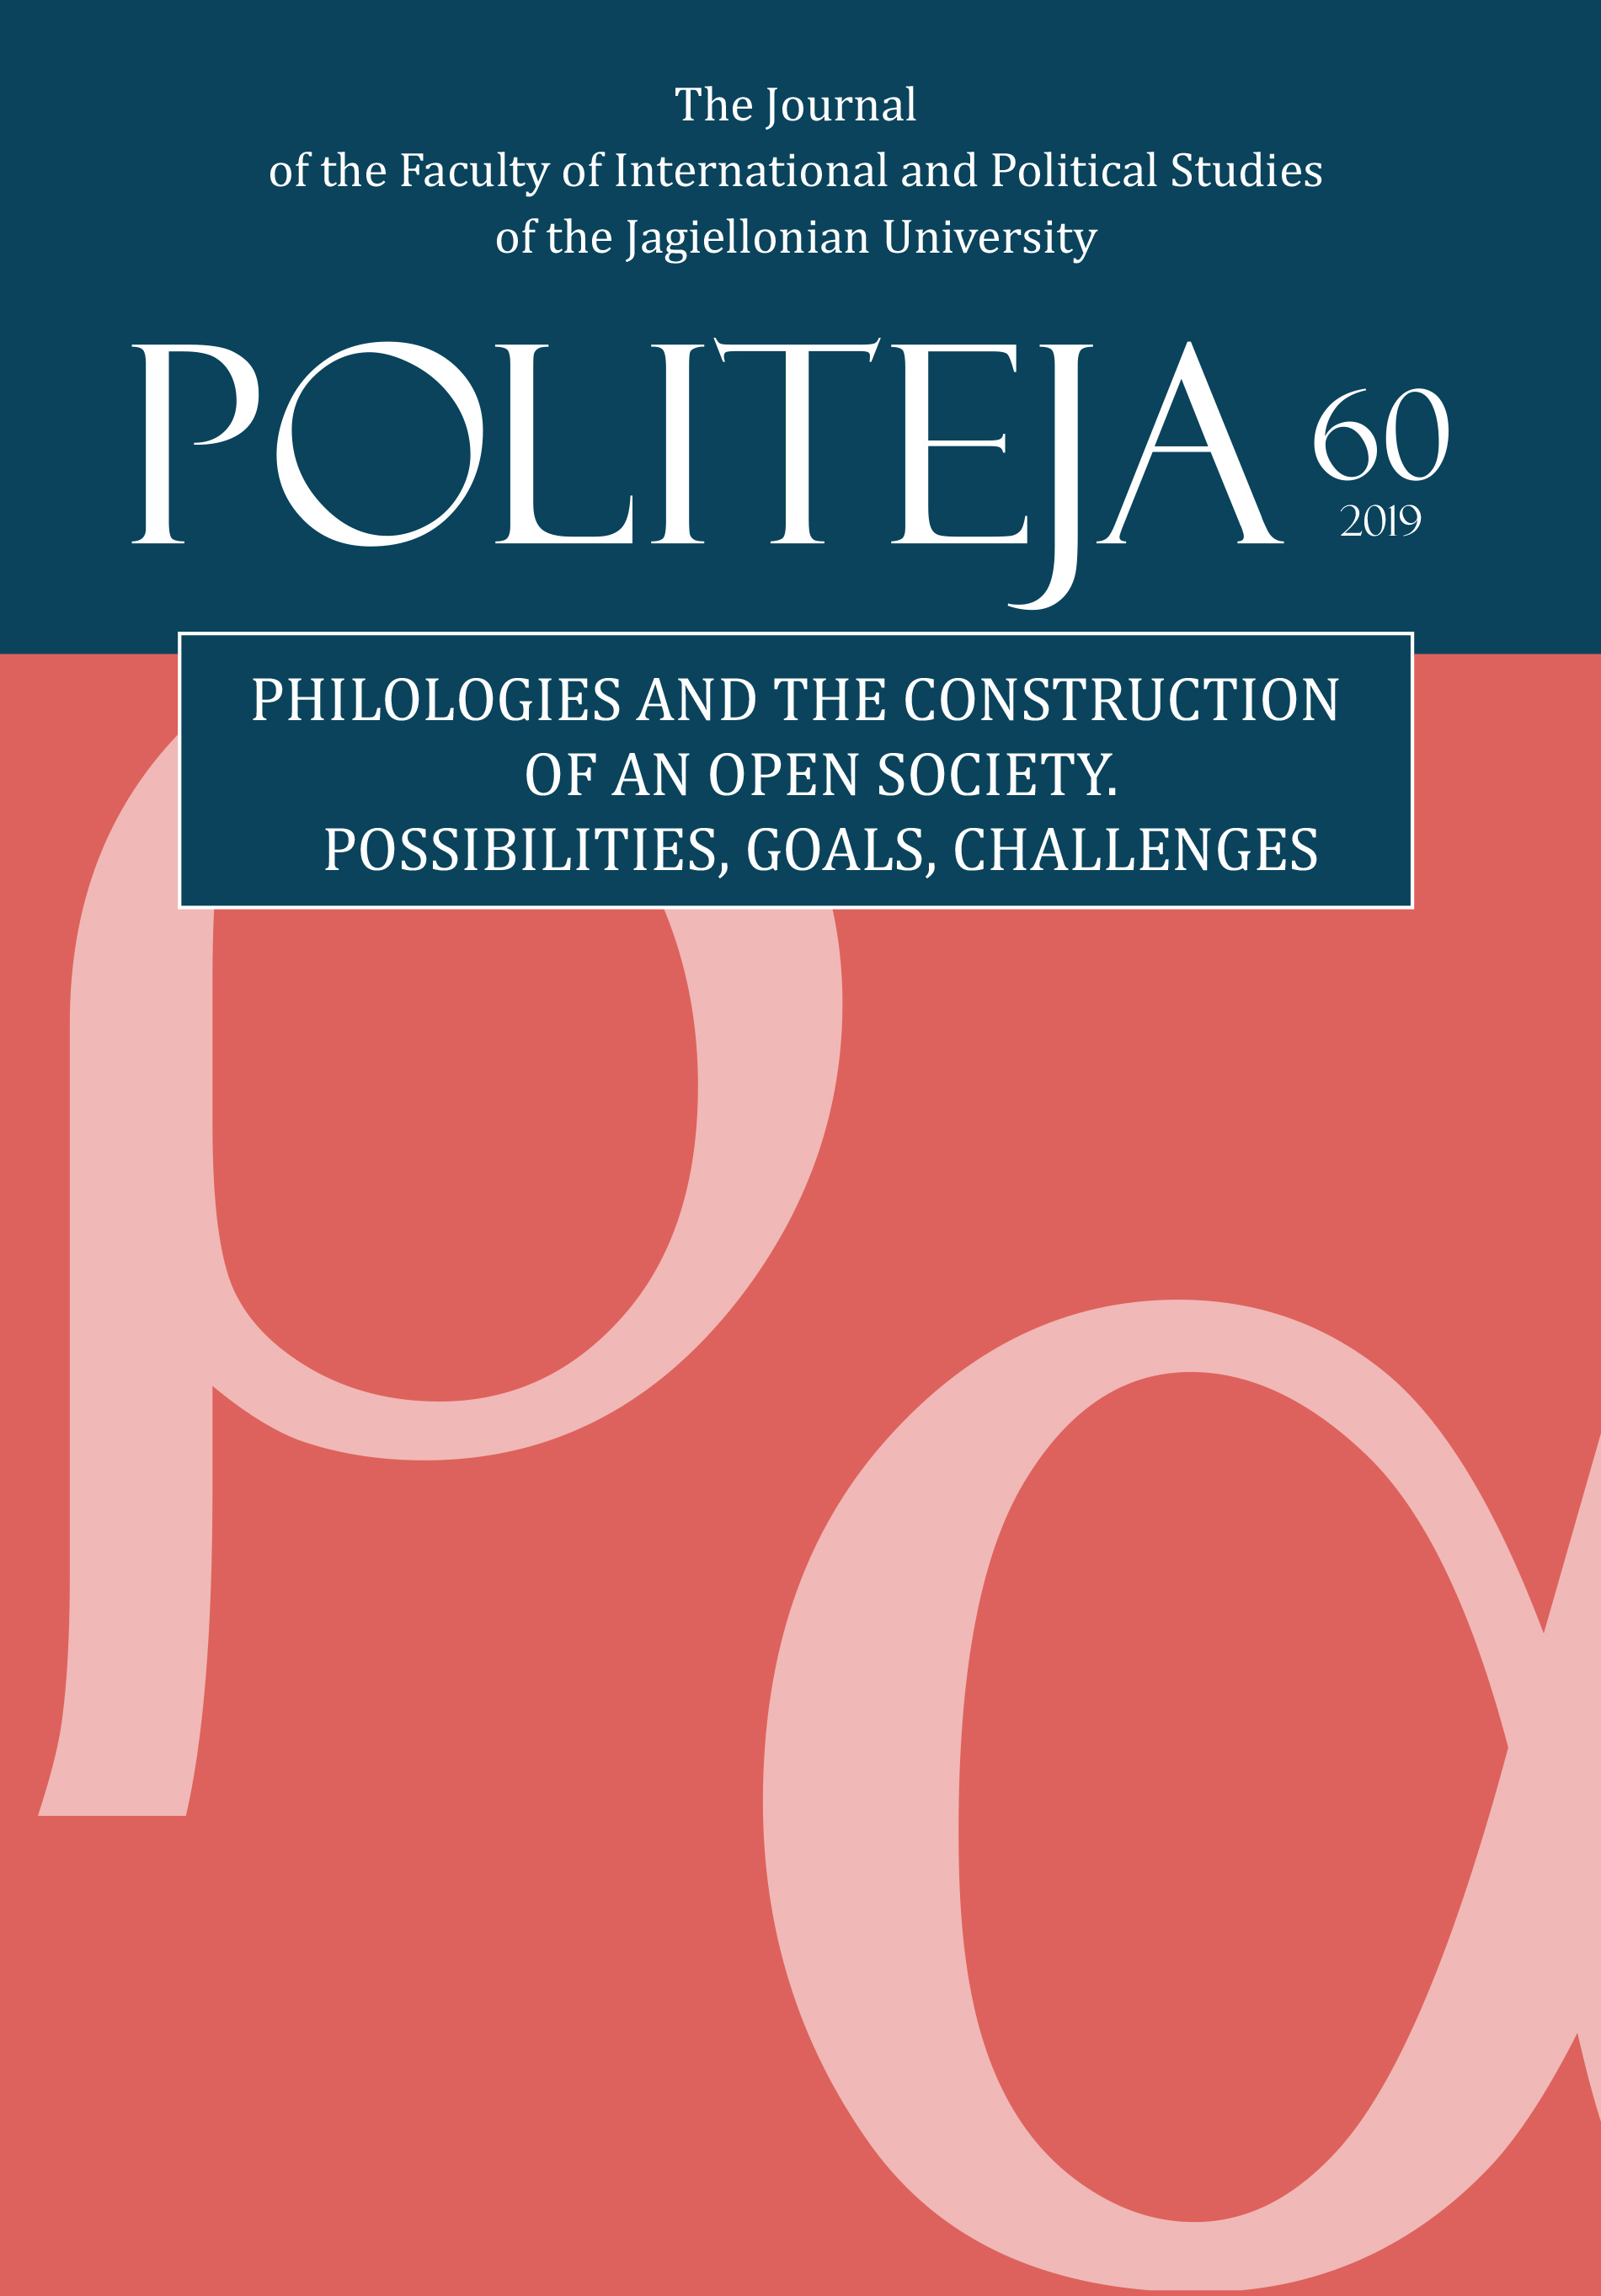 View Vol. 16 No. 3(60) (2019): Philologies and the Construction of an Open Society: Possibilities, Goals, Challenges